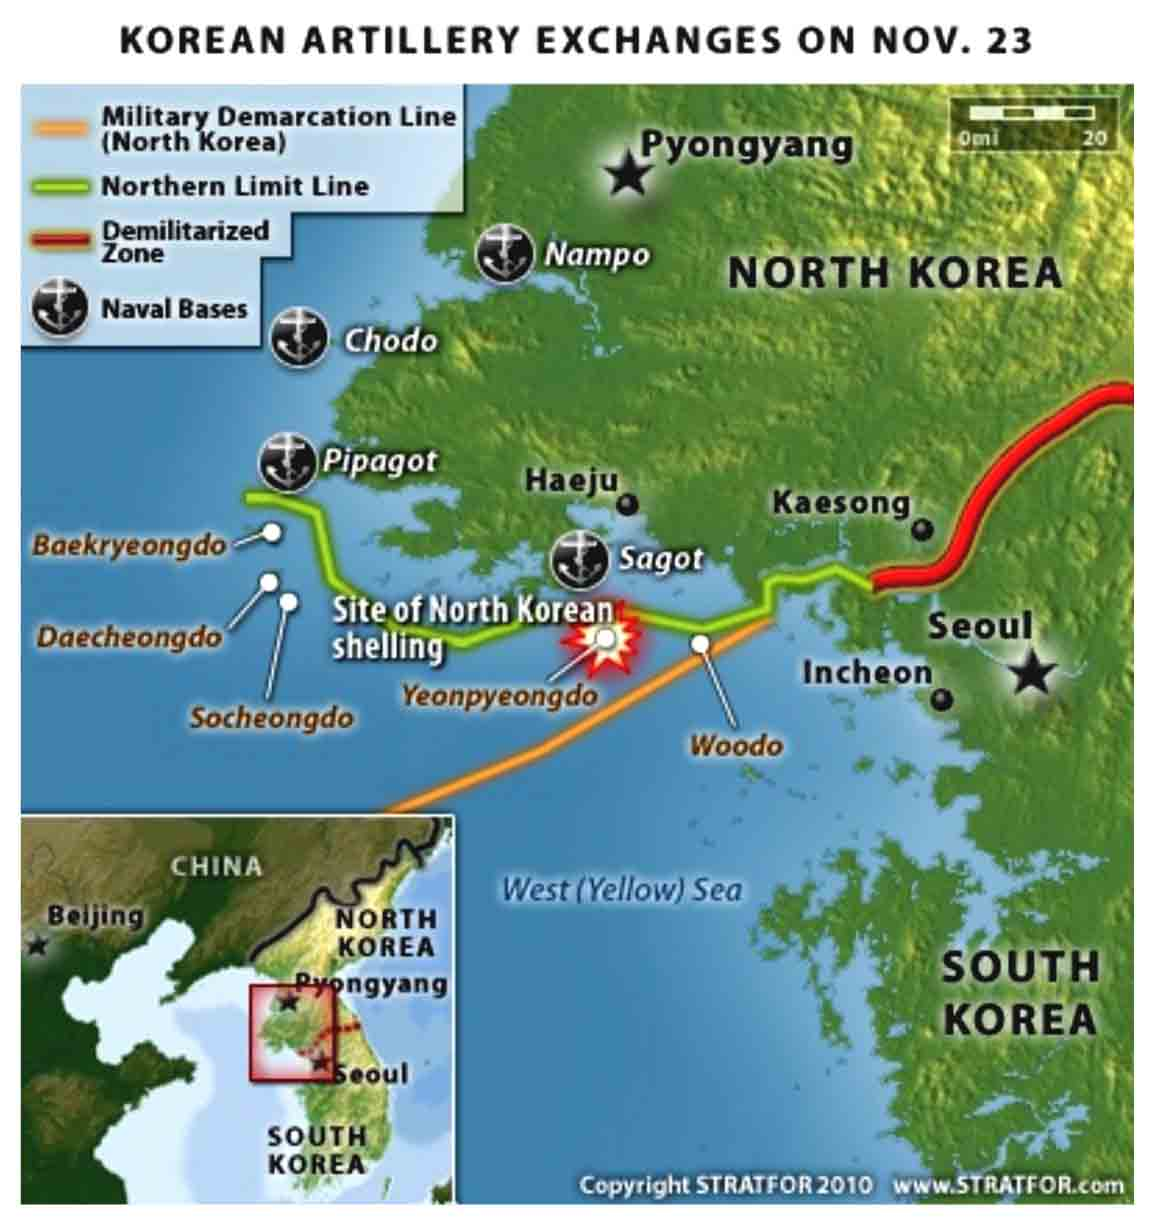 Korean Artillery Exchanges on Nov. 23